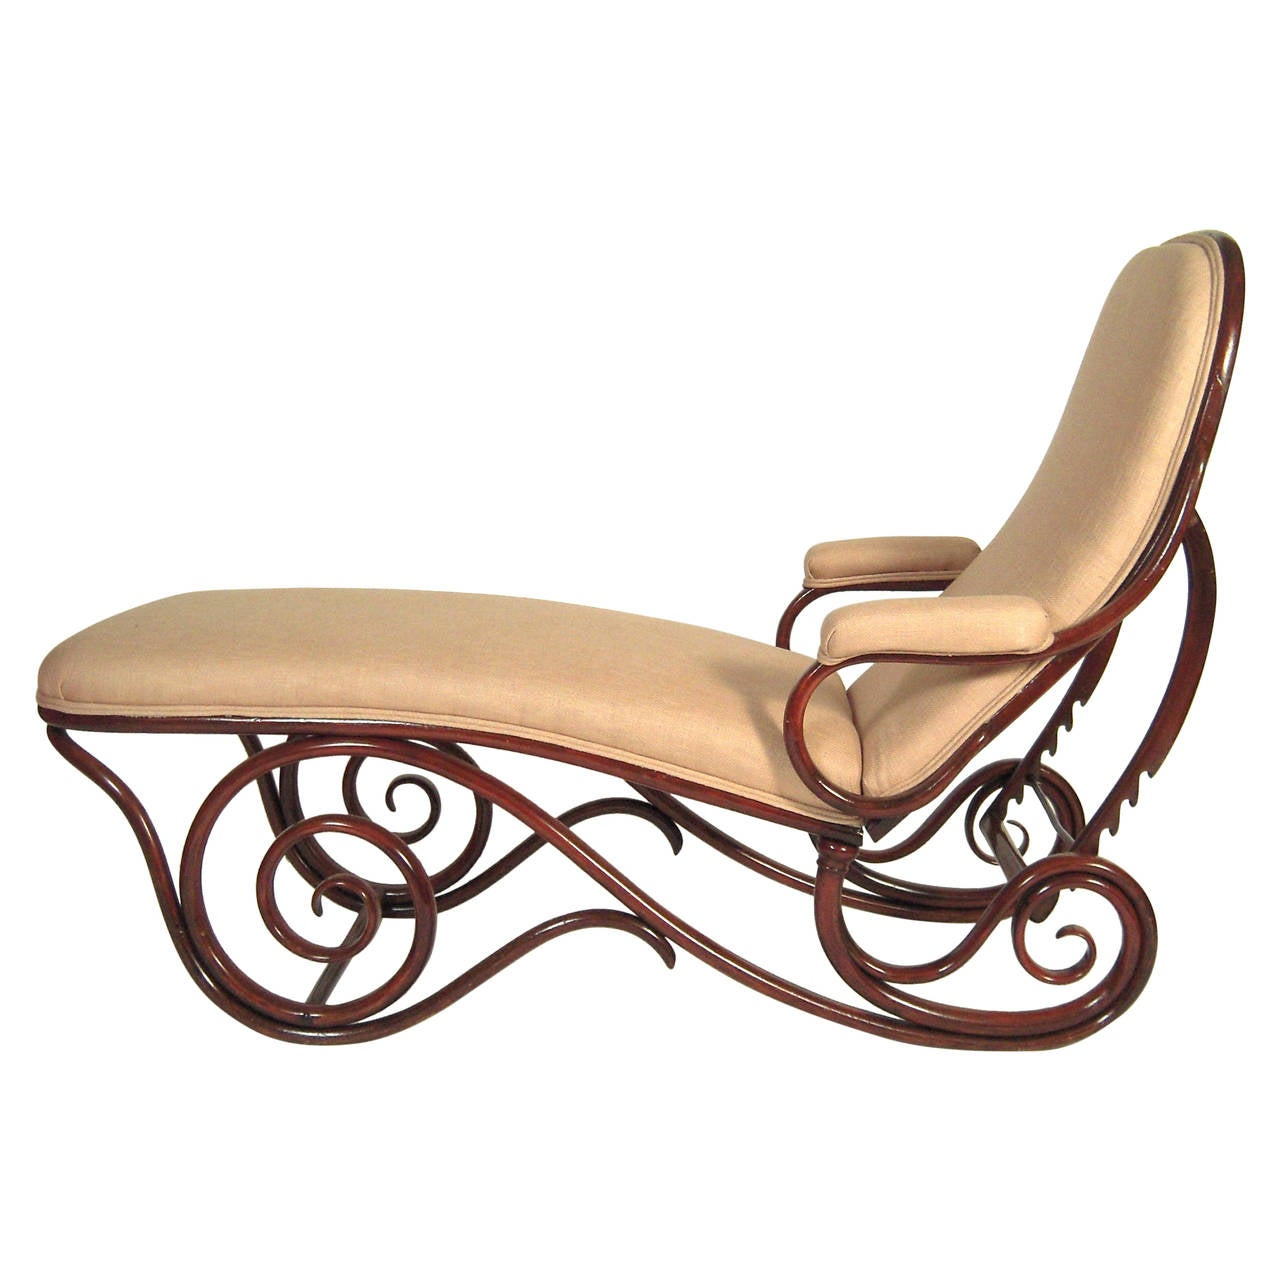 thonet adjustable bentwood chaise longue at 1stdibs. Black Bedroom Furniture Sets. Home Design Ideas